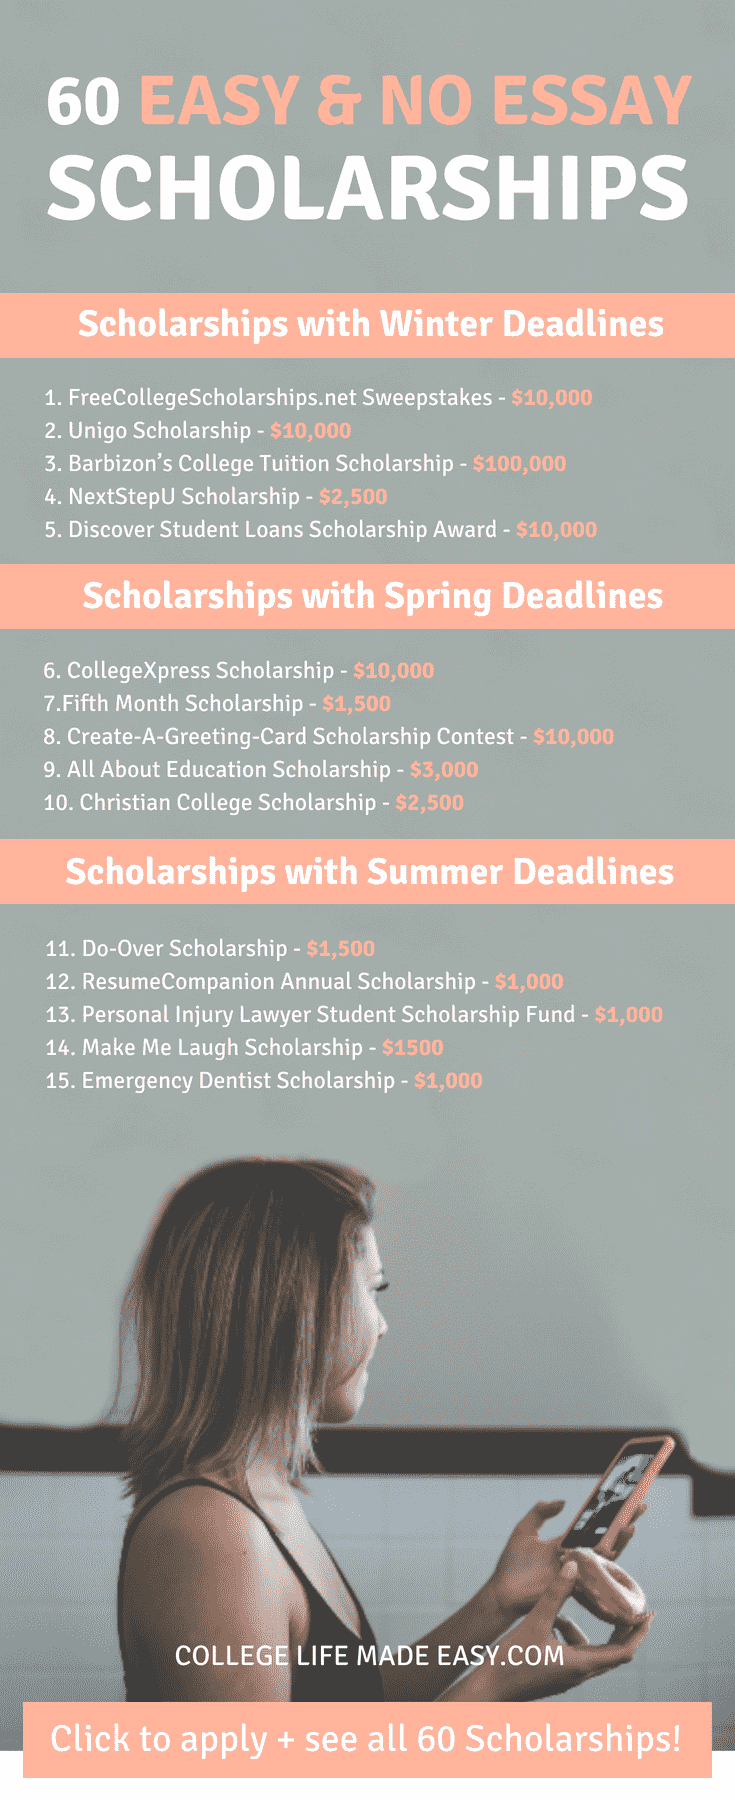 Easy essay scholarships